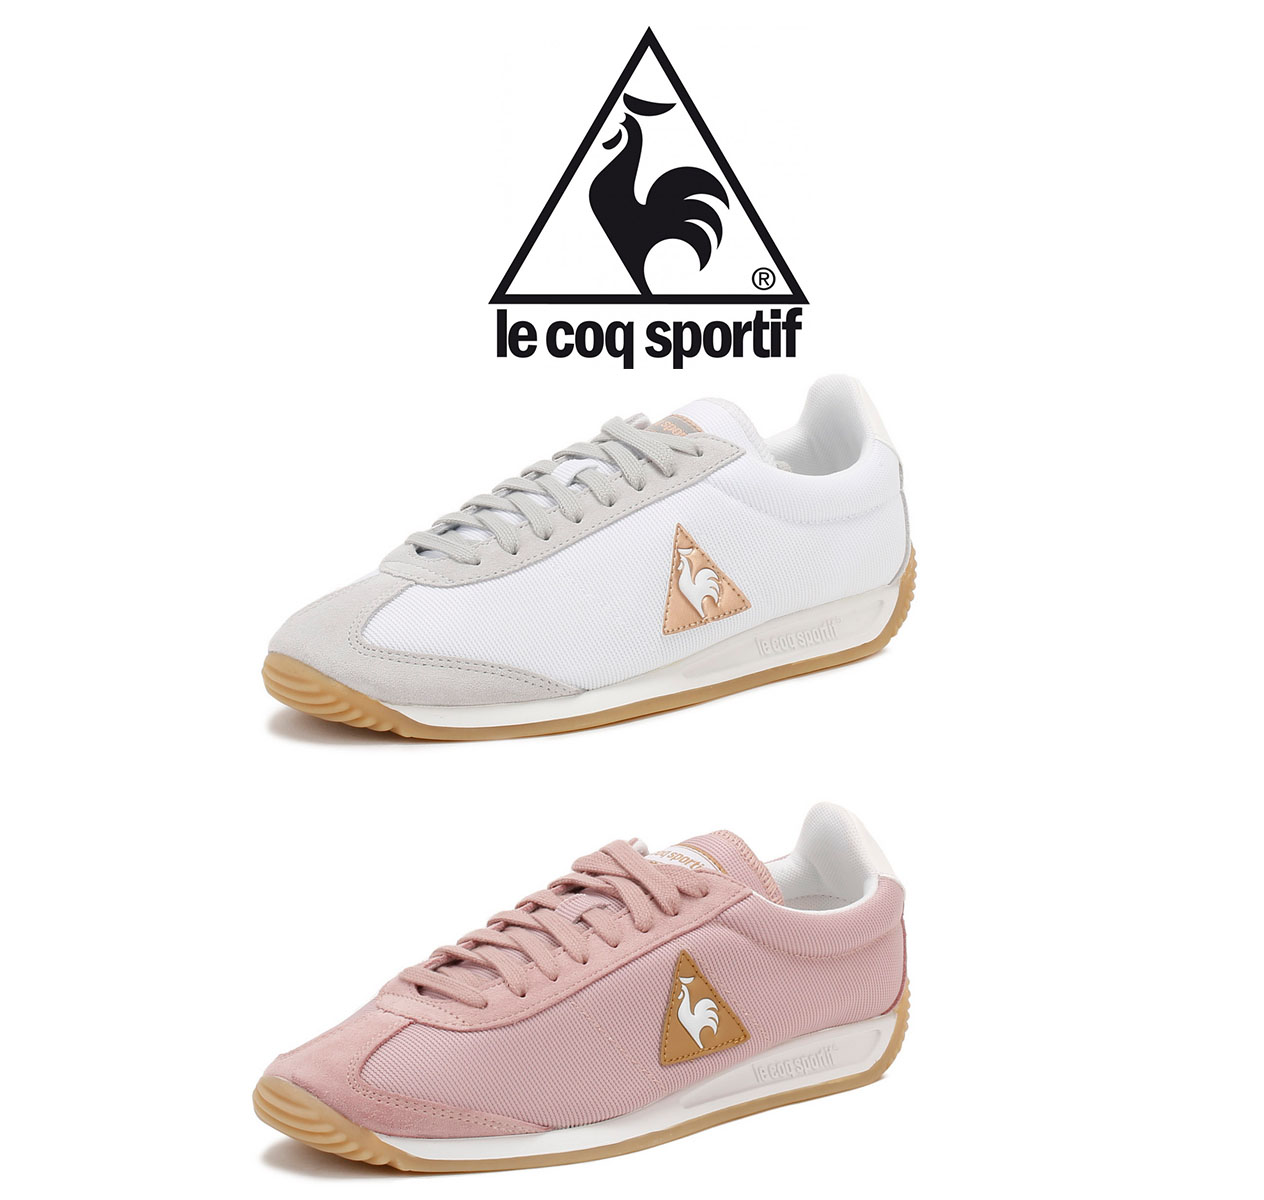 91f6290ada4e Trainers Quartz W Retro Nylon from Le Coq Sportif are the perfect  lightweight running shoes with vintage look. Featuring a suede   nylon  upper